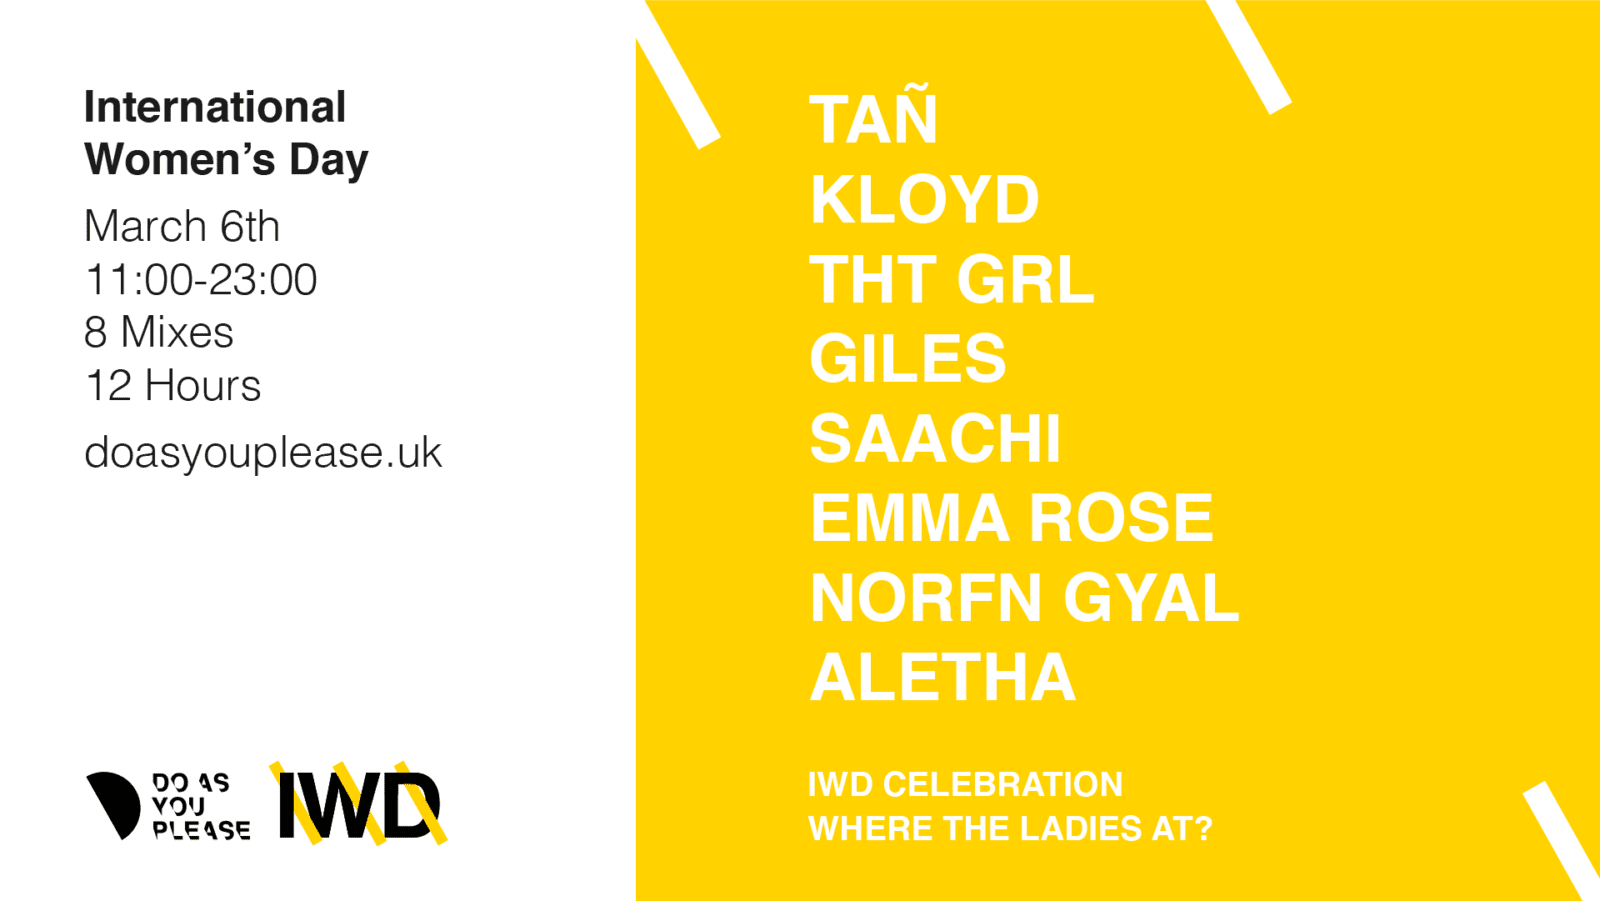 Manchester label's showcase of women in music launches on Saturday, The Manc